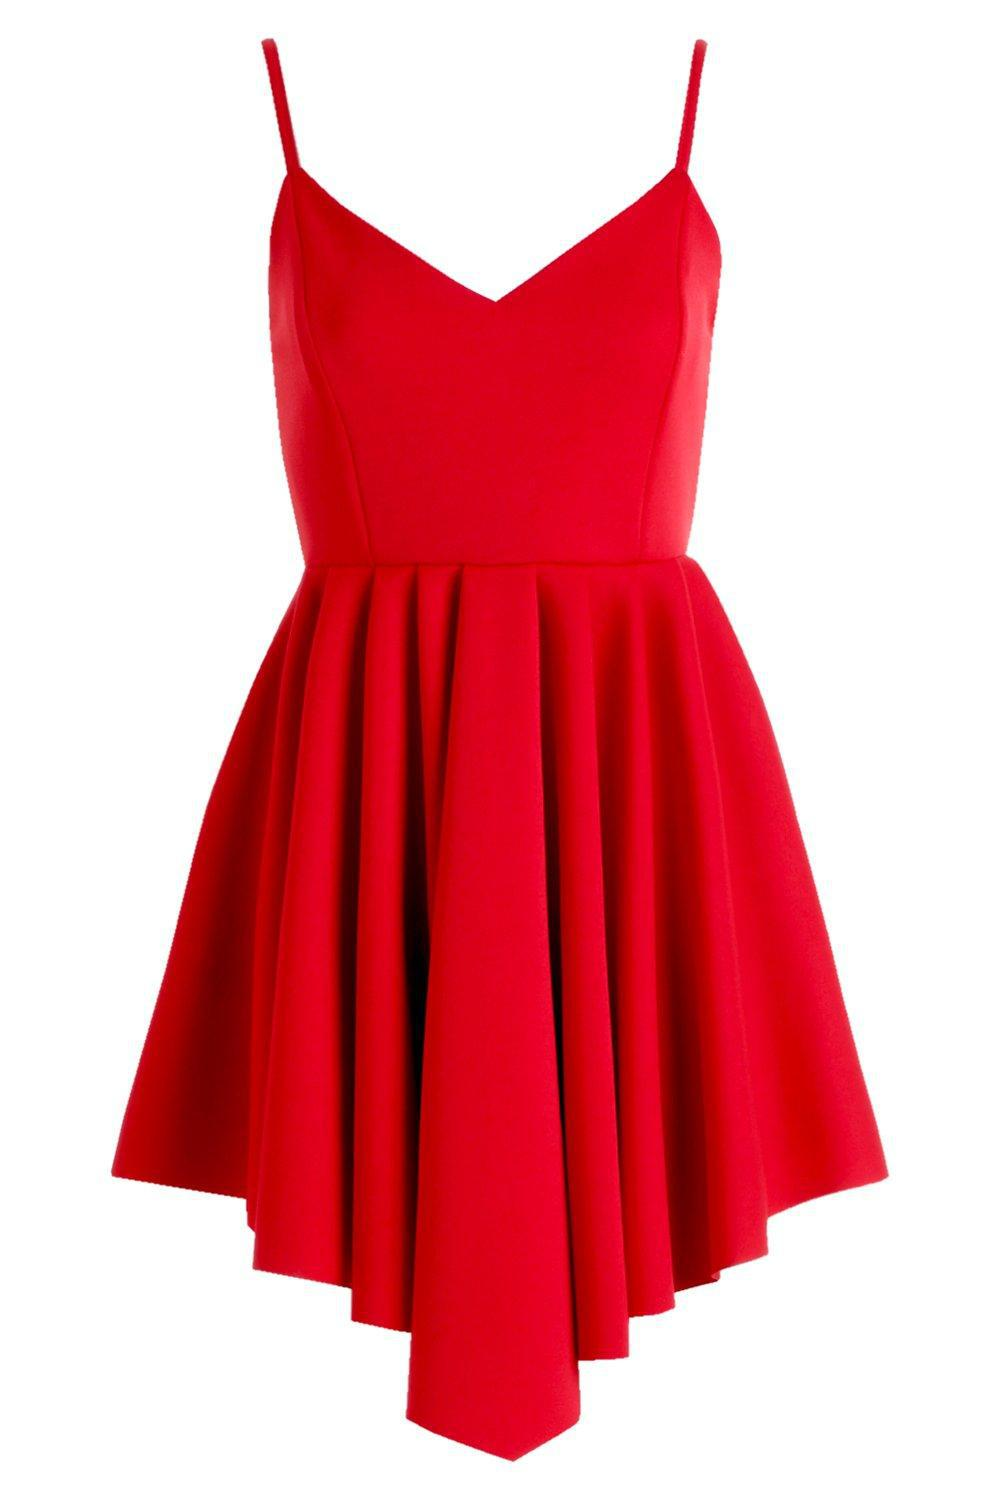 e120b271ce Boohoo - Red Scuba Strappy Pleated Skater Dress - Lyst. View fullscreen